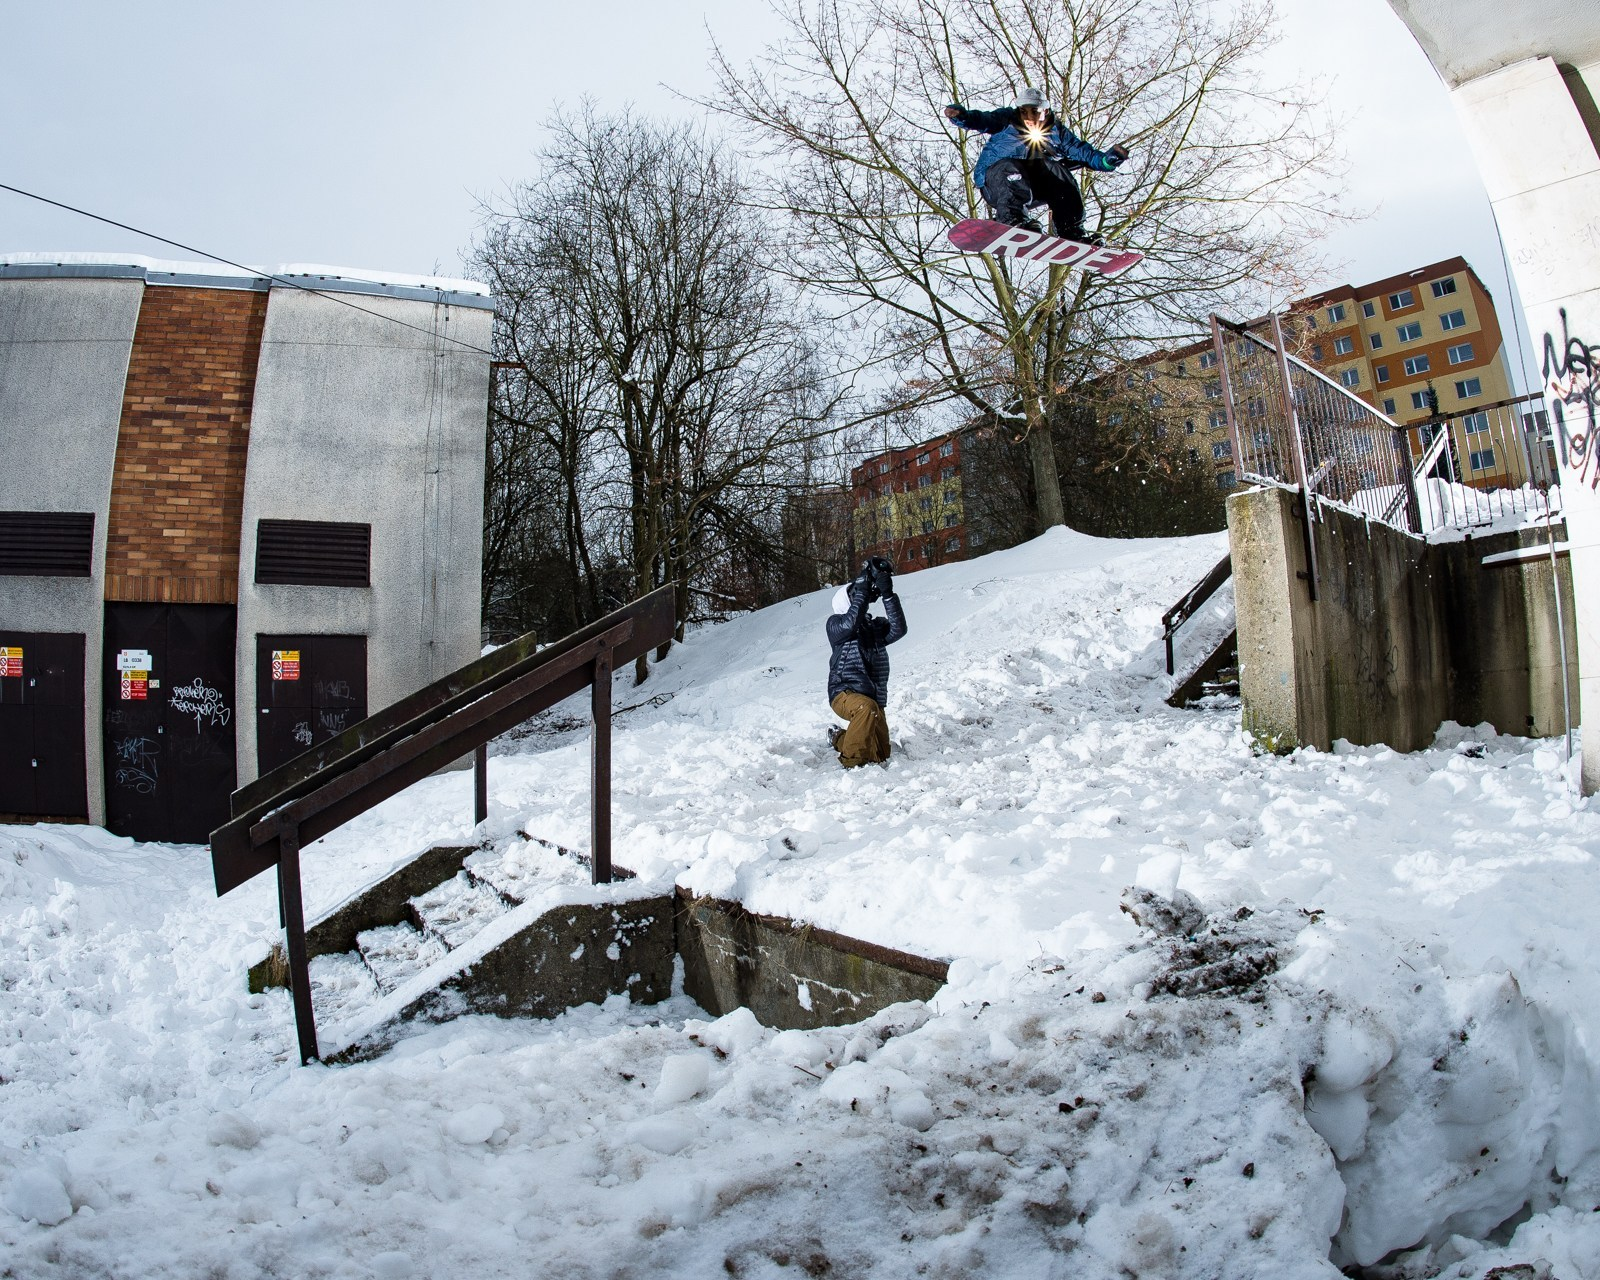 Ode to Ojo Dillon Ojo snowboarder feature